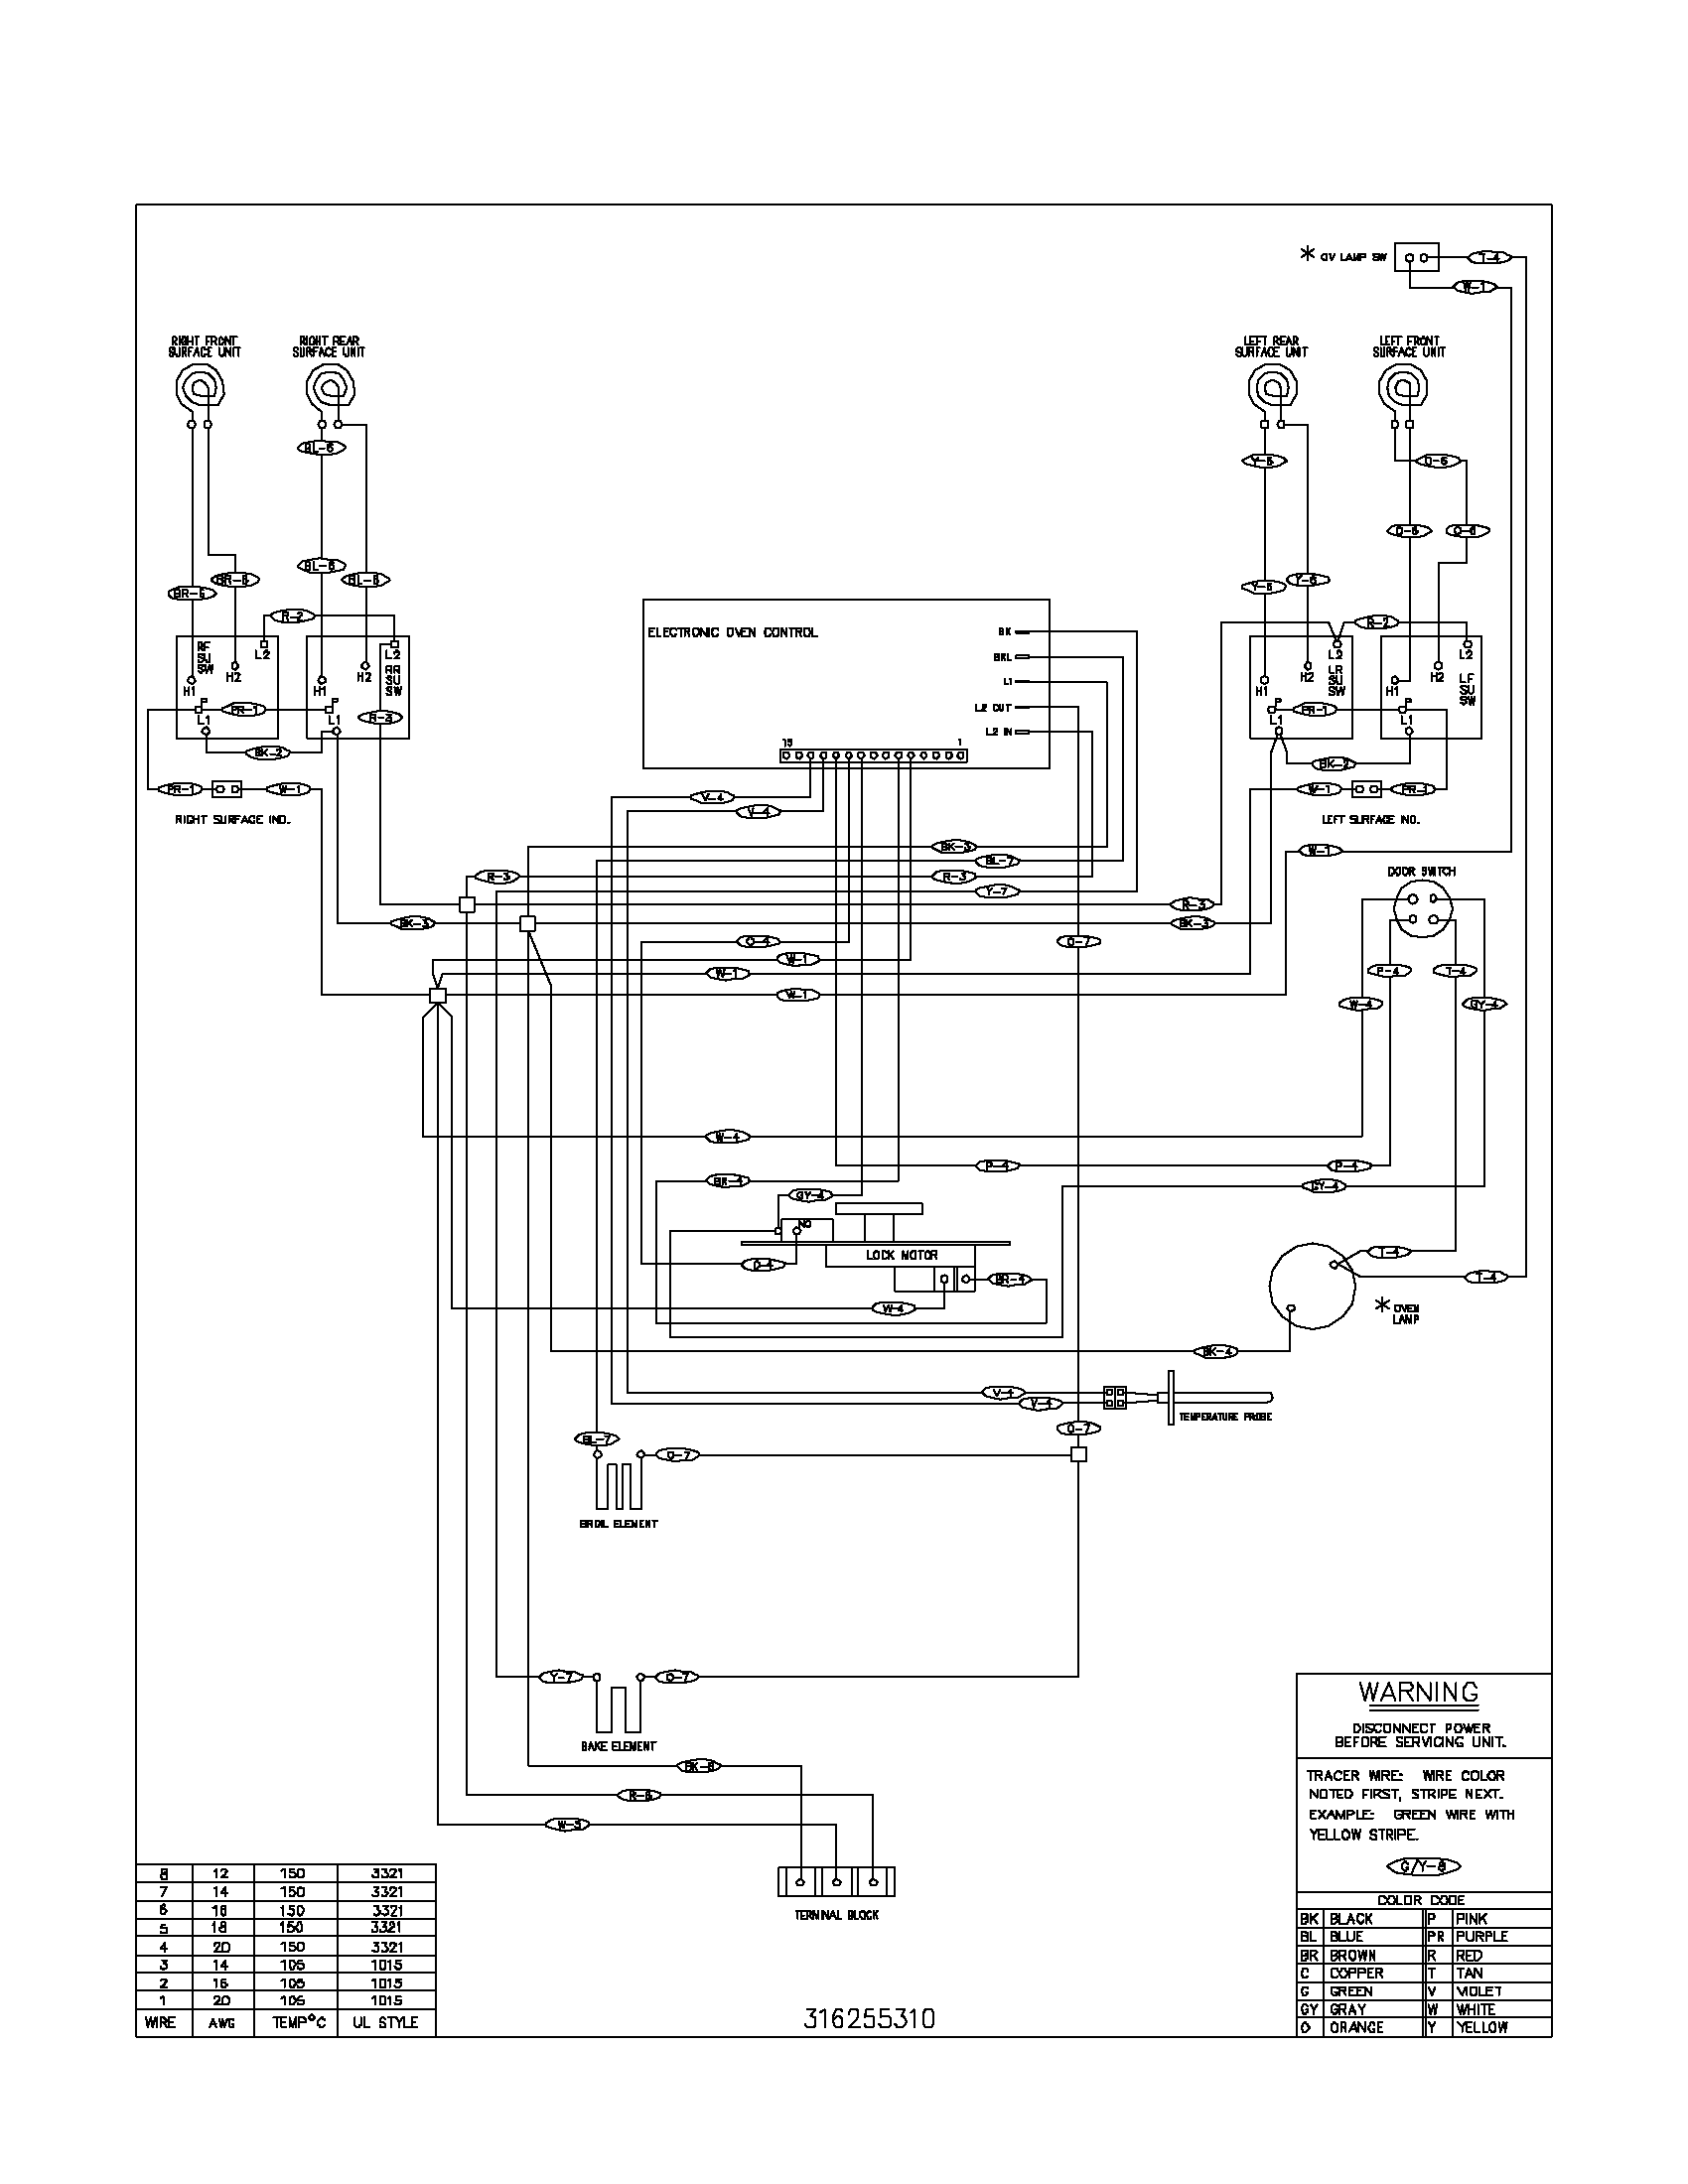 wiring diagram for ge dryer motor with Appliance on Washing Machine Repair 7 together with Index further Whirlpool Thermal Fuse 91 Wp3392519 Ap6008325 moreover 2010 Subaru Forester Wiring Diagram Manual moreover Maytag Dryer Wiring Diagram.